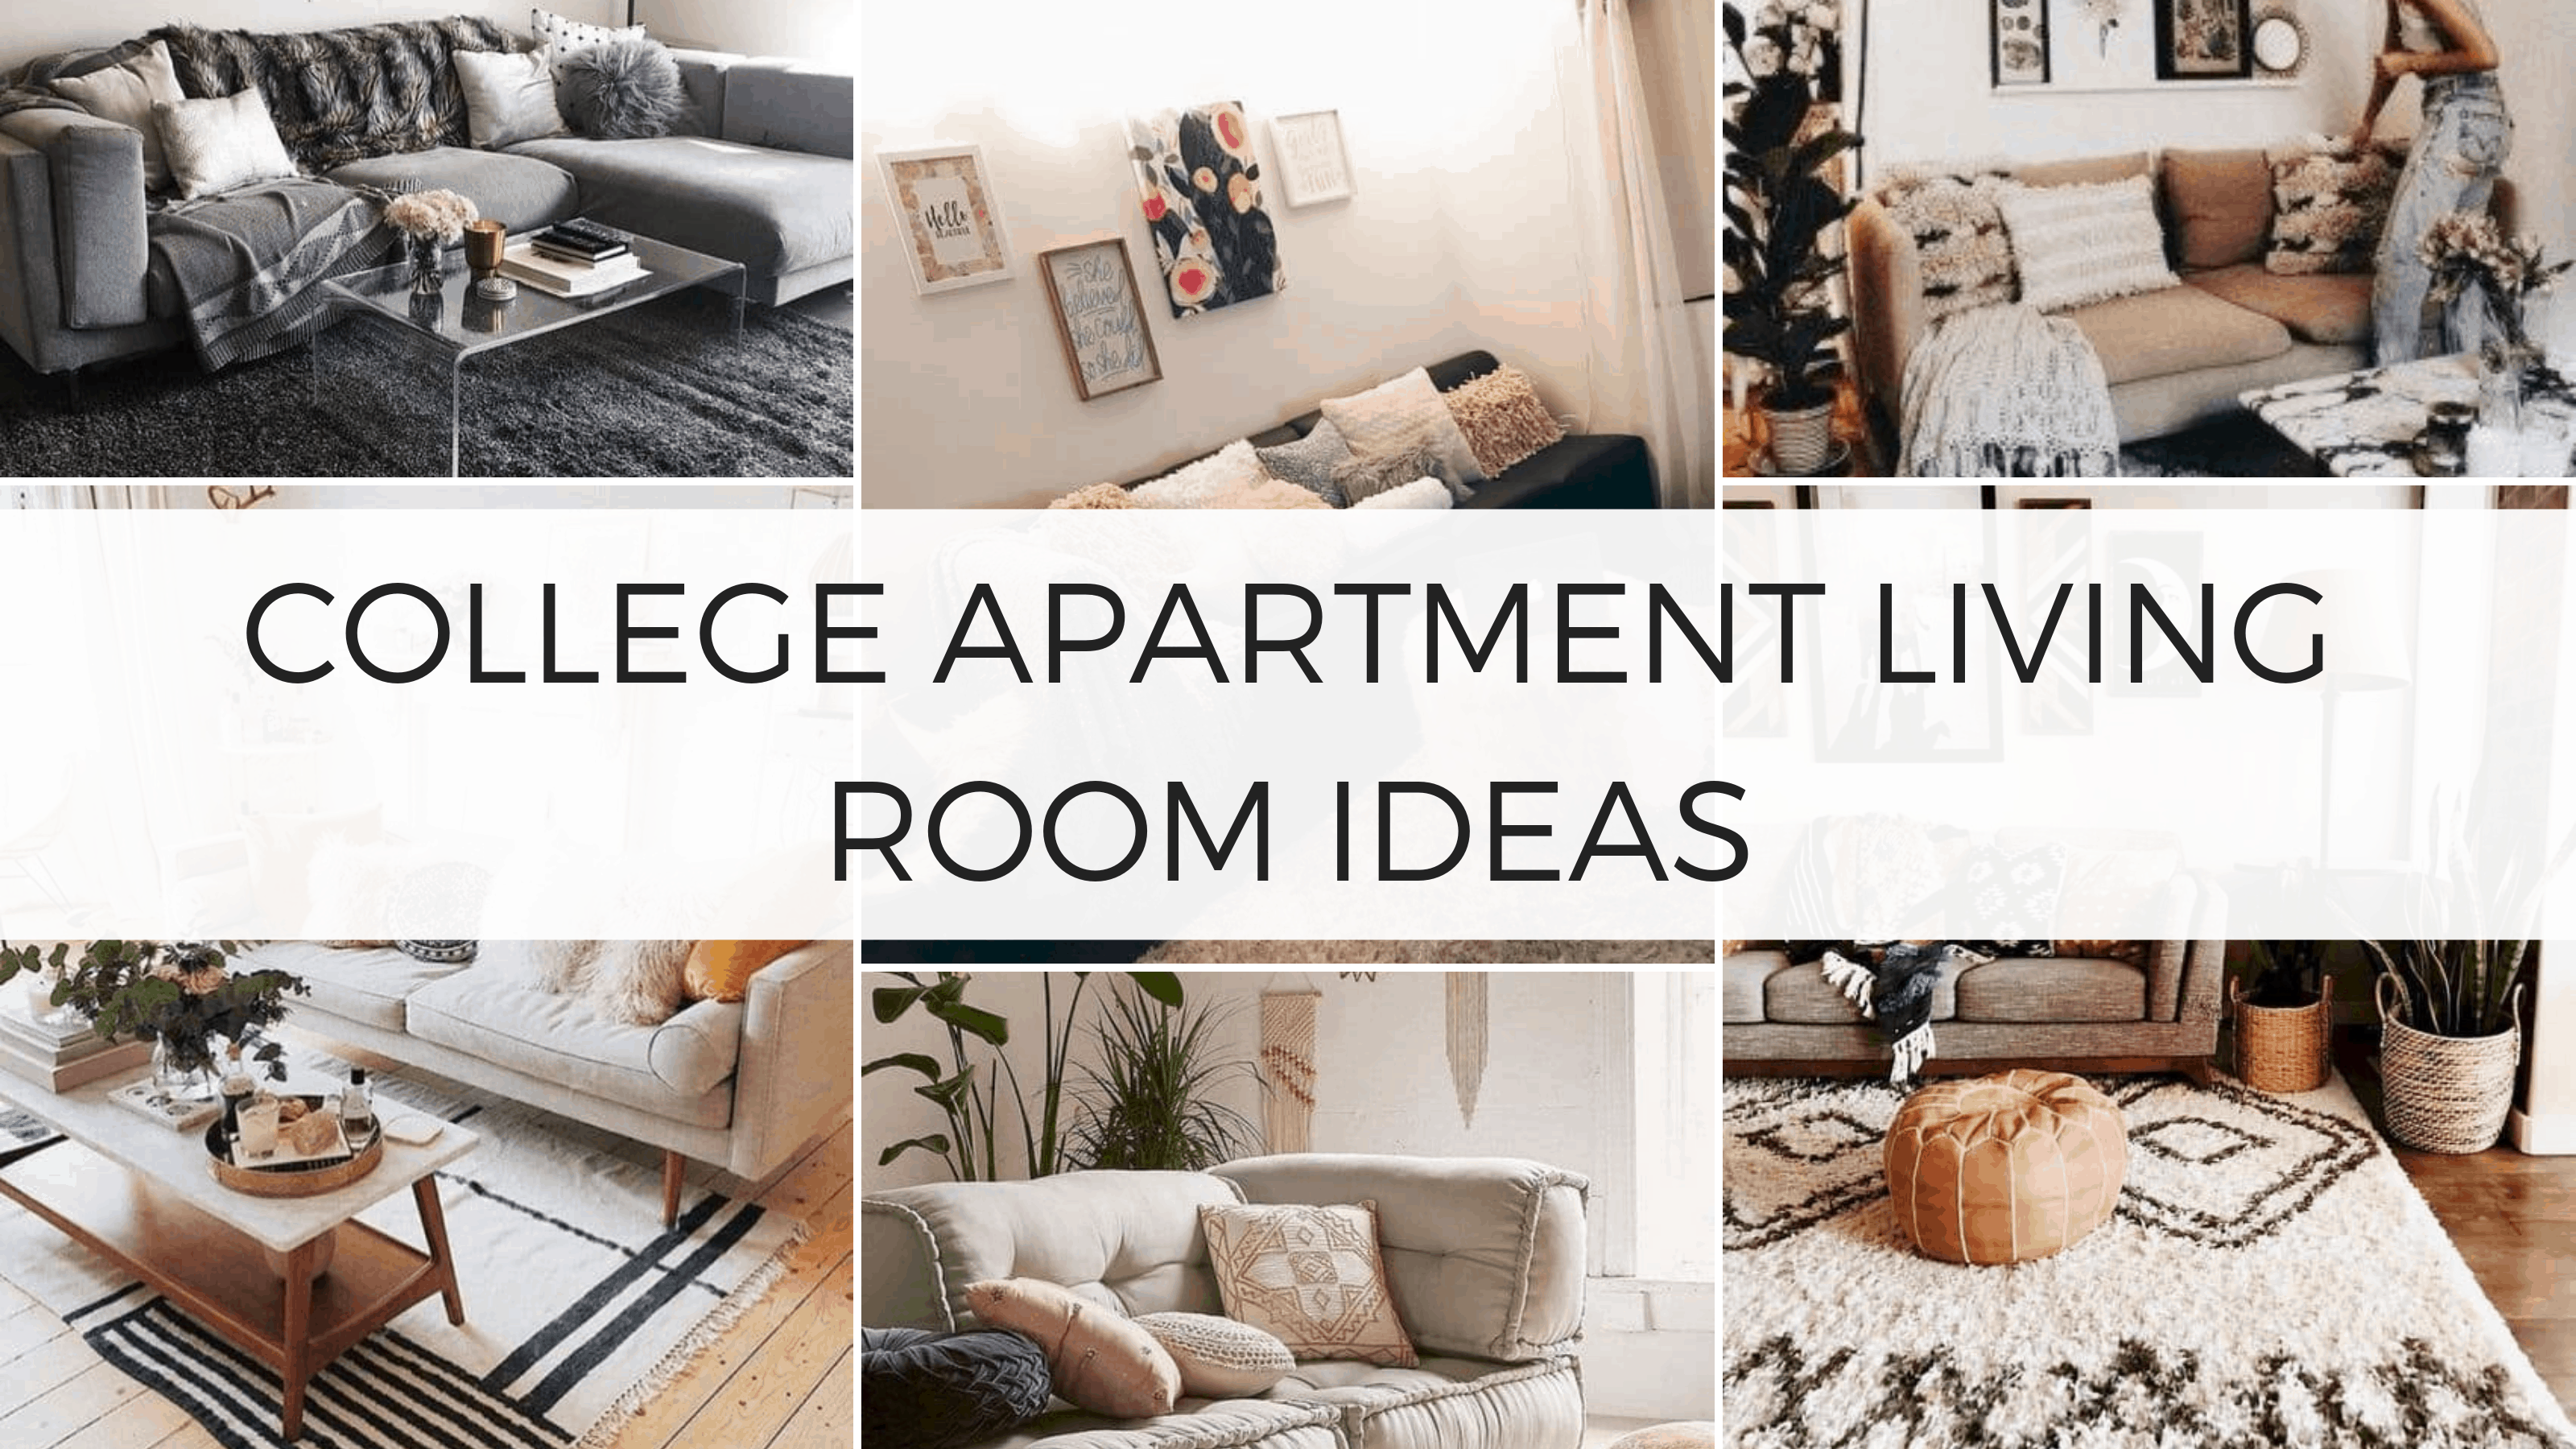 26 Insanely Cute College Apartment Living Room Ideas To Copy By Sophia Lee